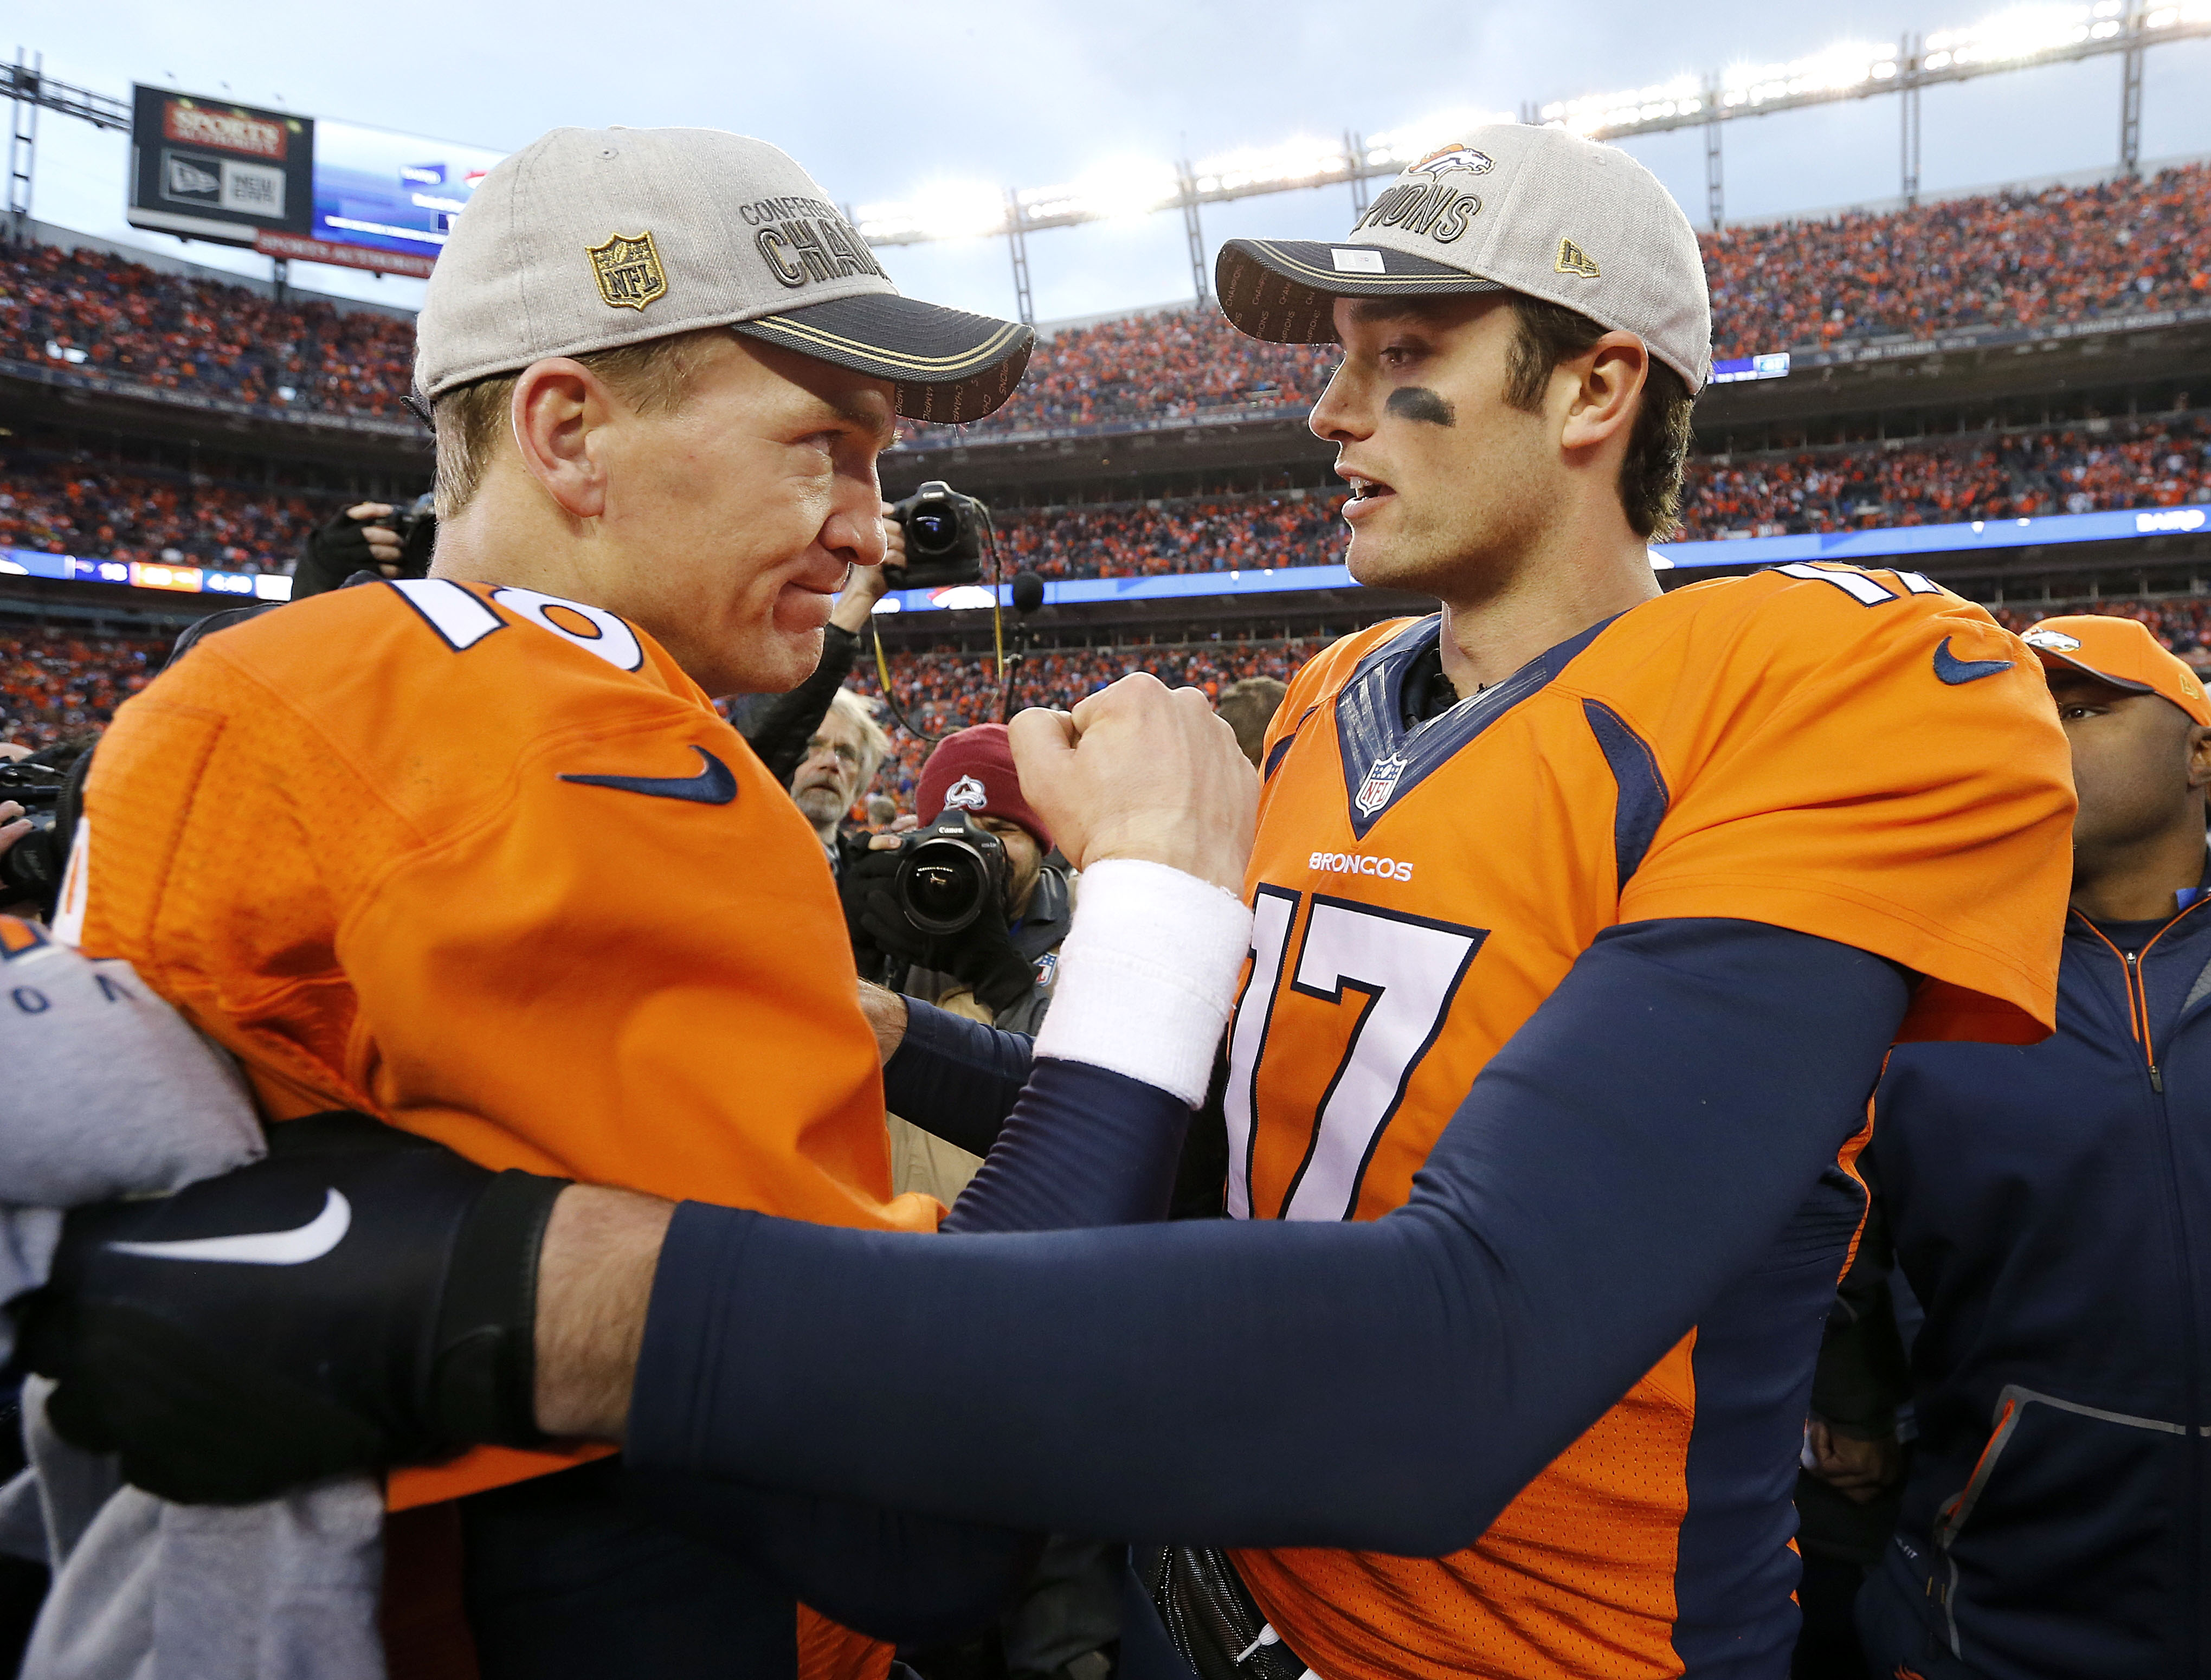 FILE - In this Jan. 24, 2016, file photo, Denver Broncos quarterback Peyton Manning, left, is congratulated by quarterback Brock Osweiler following their  20-18 win over the New England Patriots in the AFC championship  NFL football game in Denver. With P